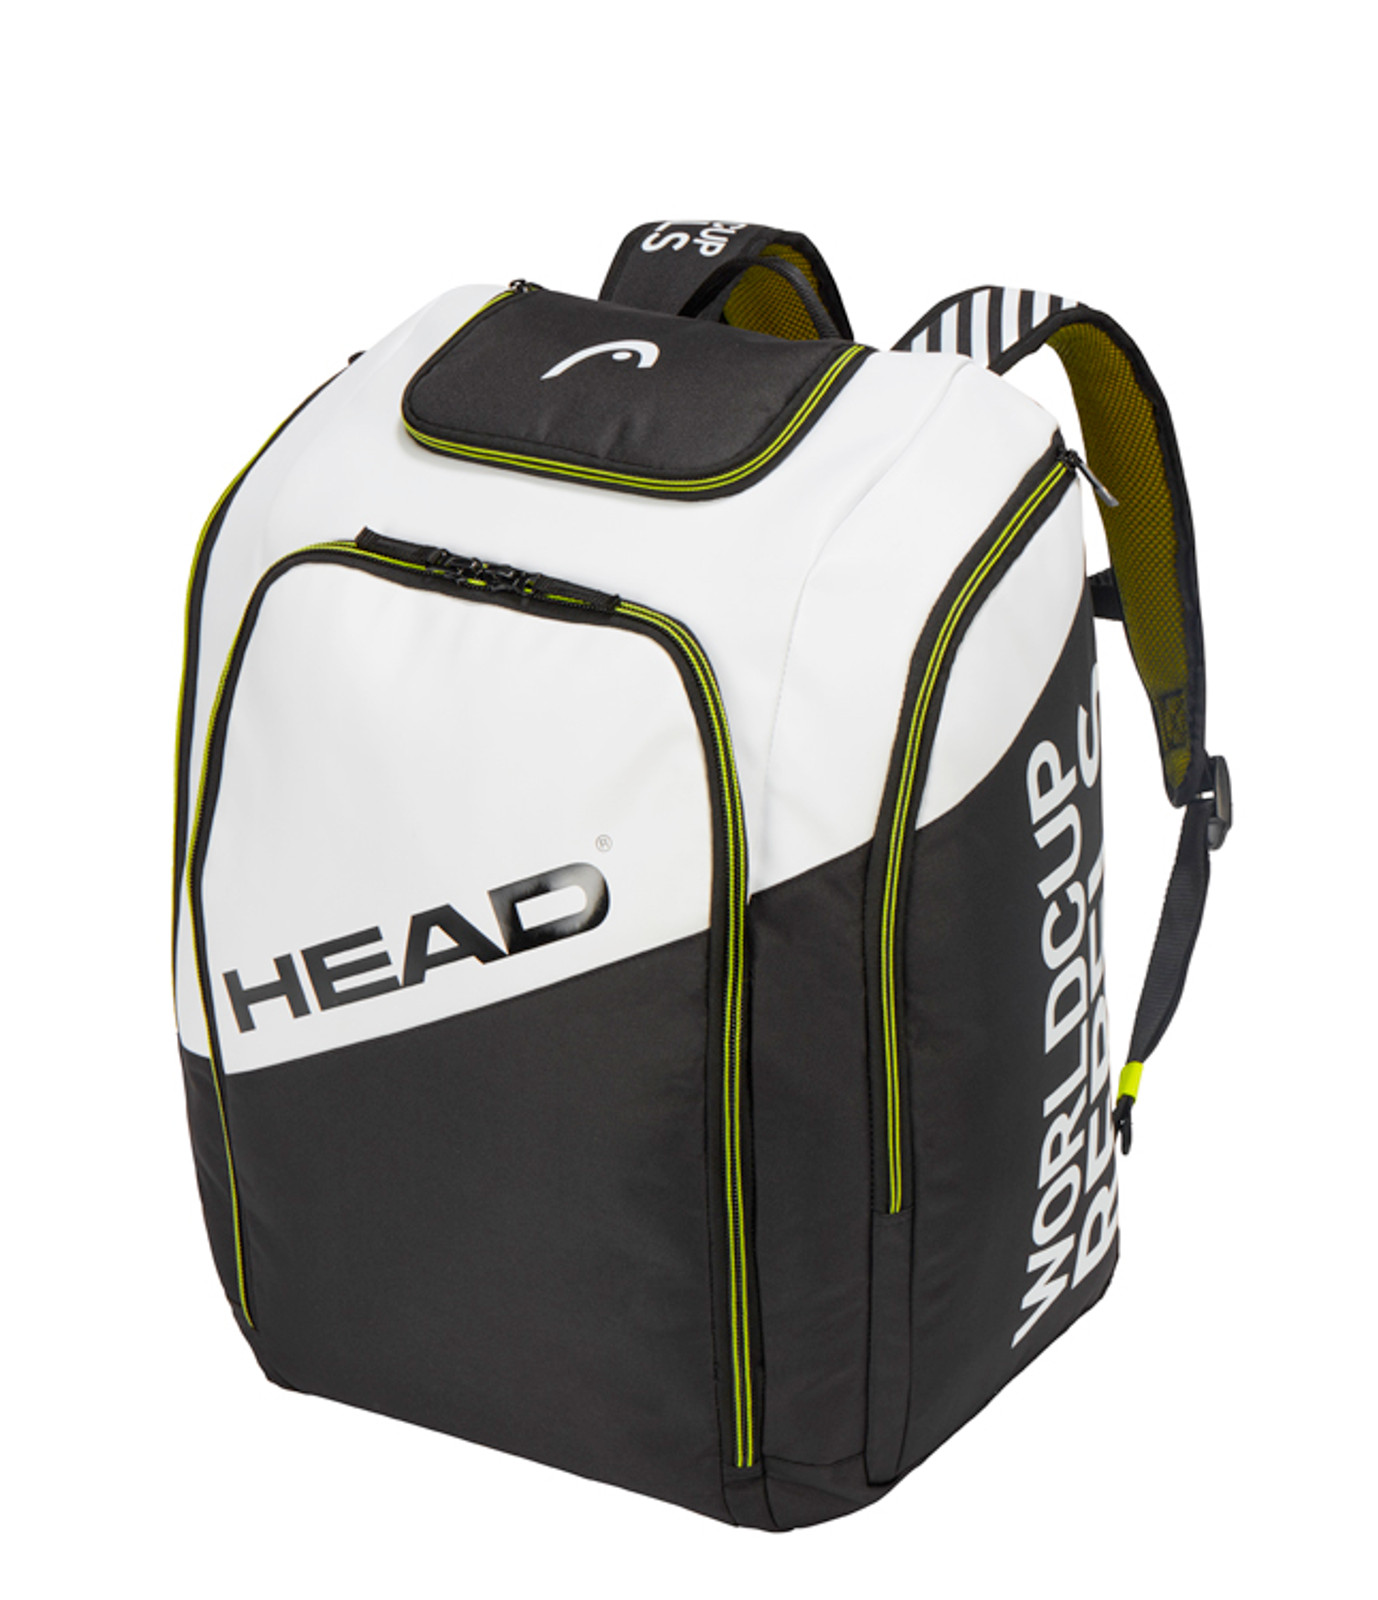 Head Rebels Racing Backpack - LARGE 19/20